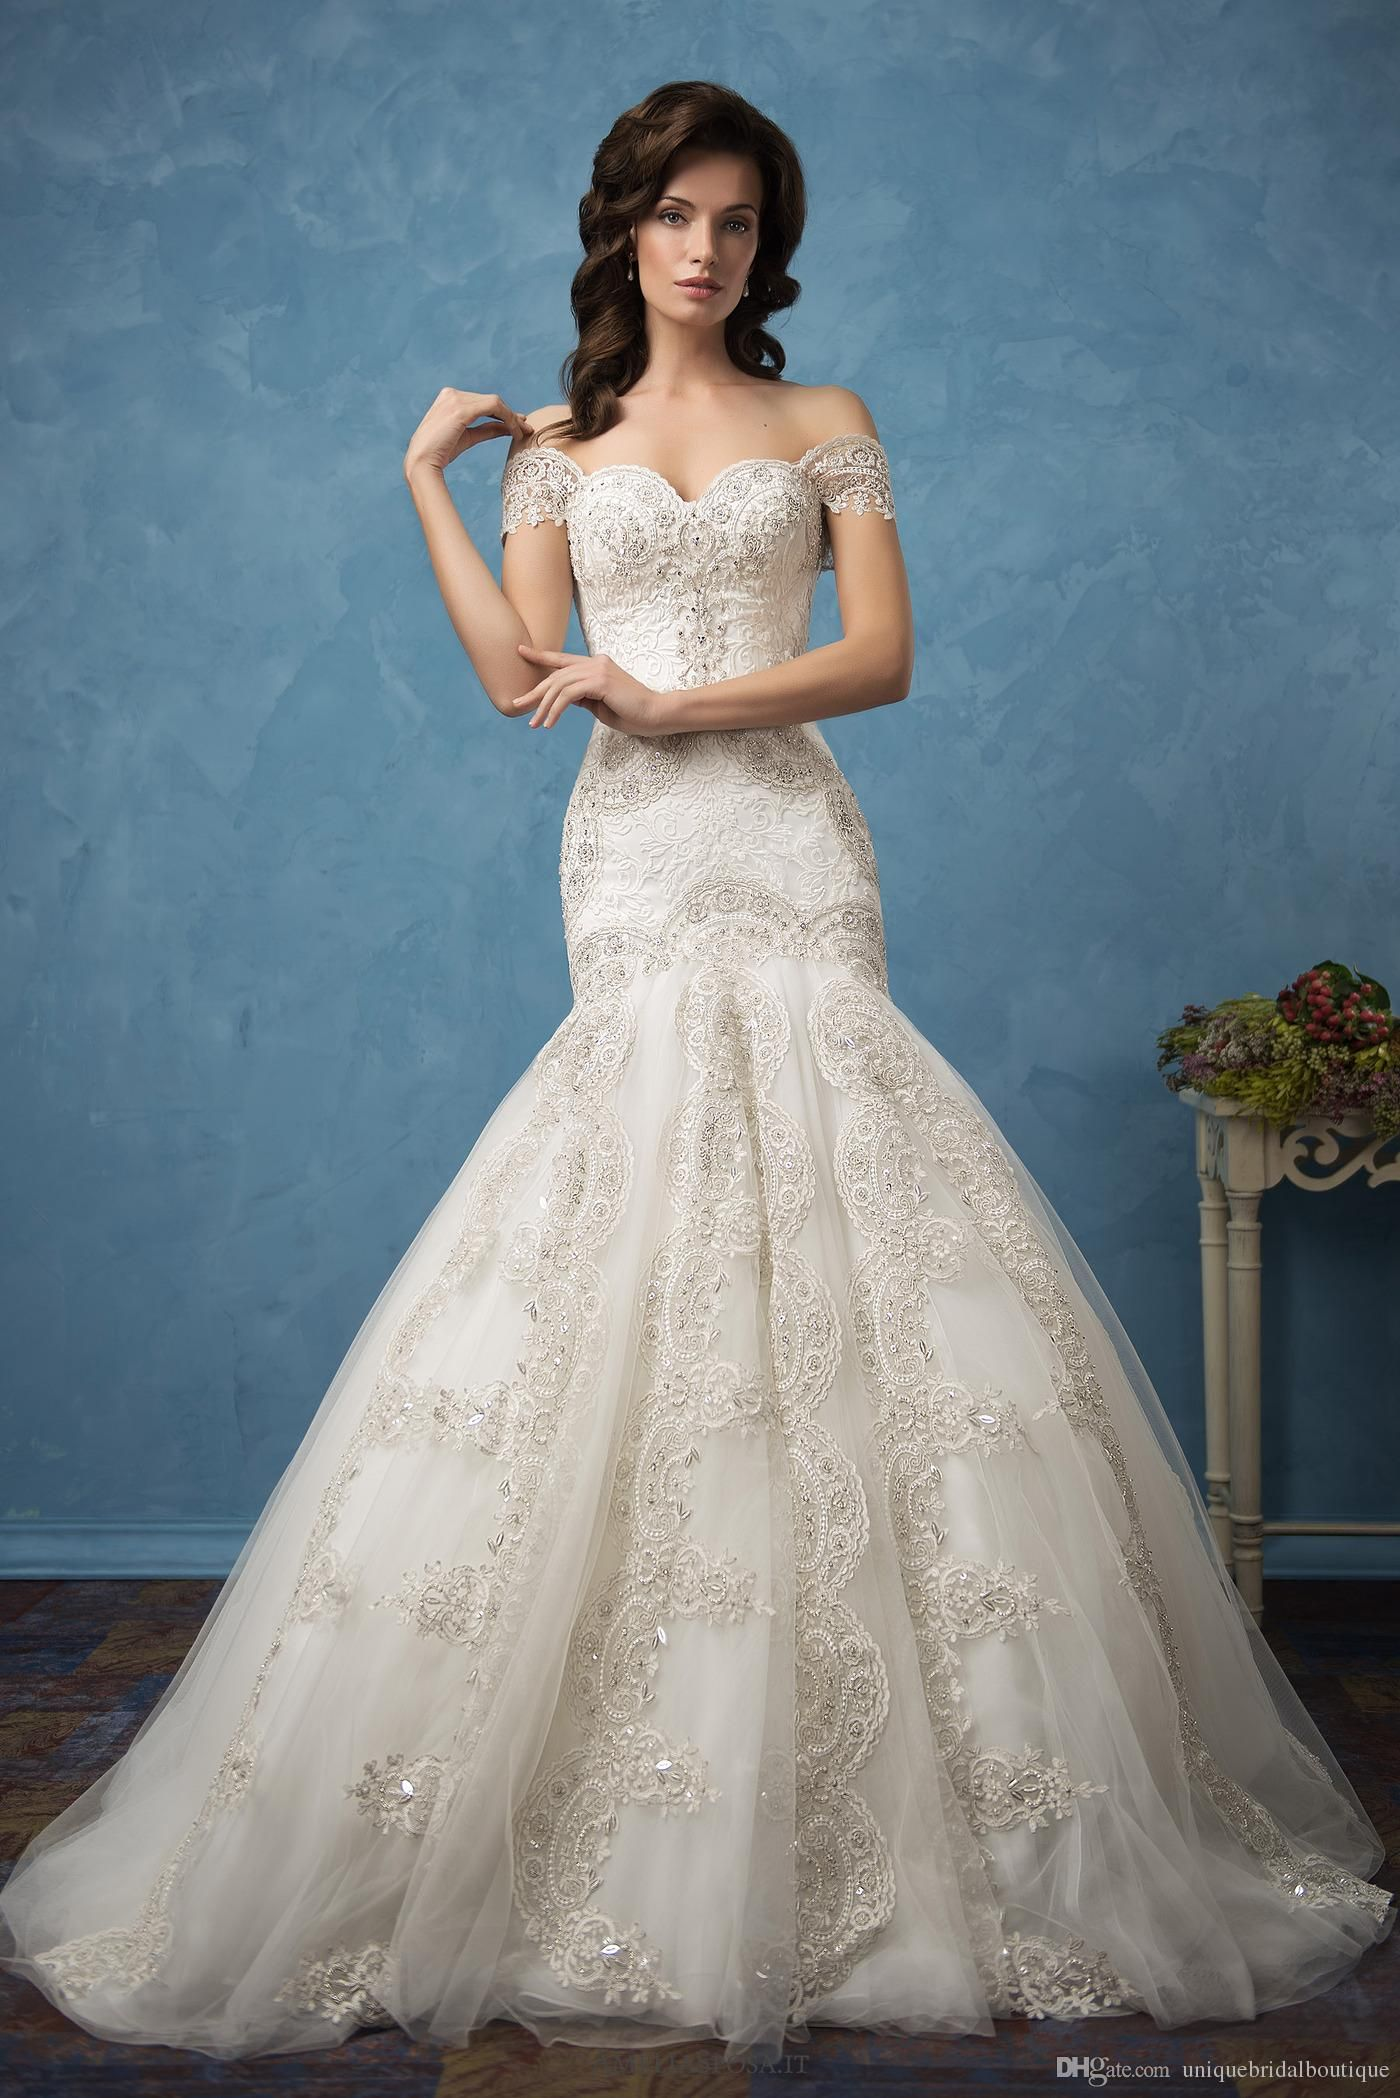 Mermaid Wedding Dresses 2017 Amelia Sposa with Off Shoulder And ...